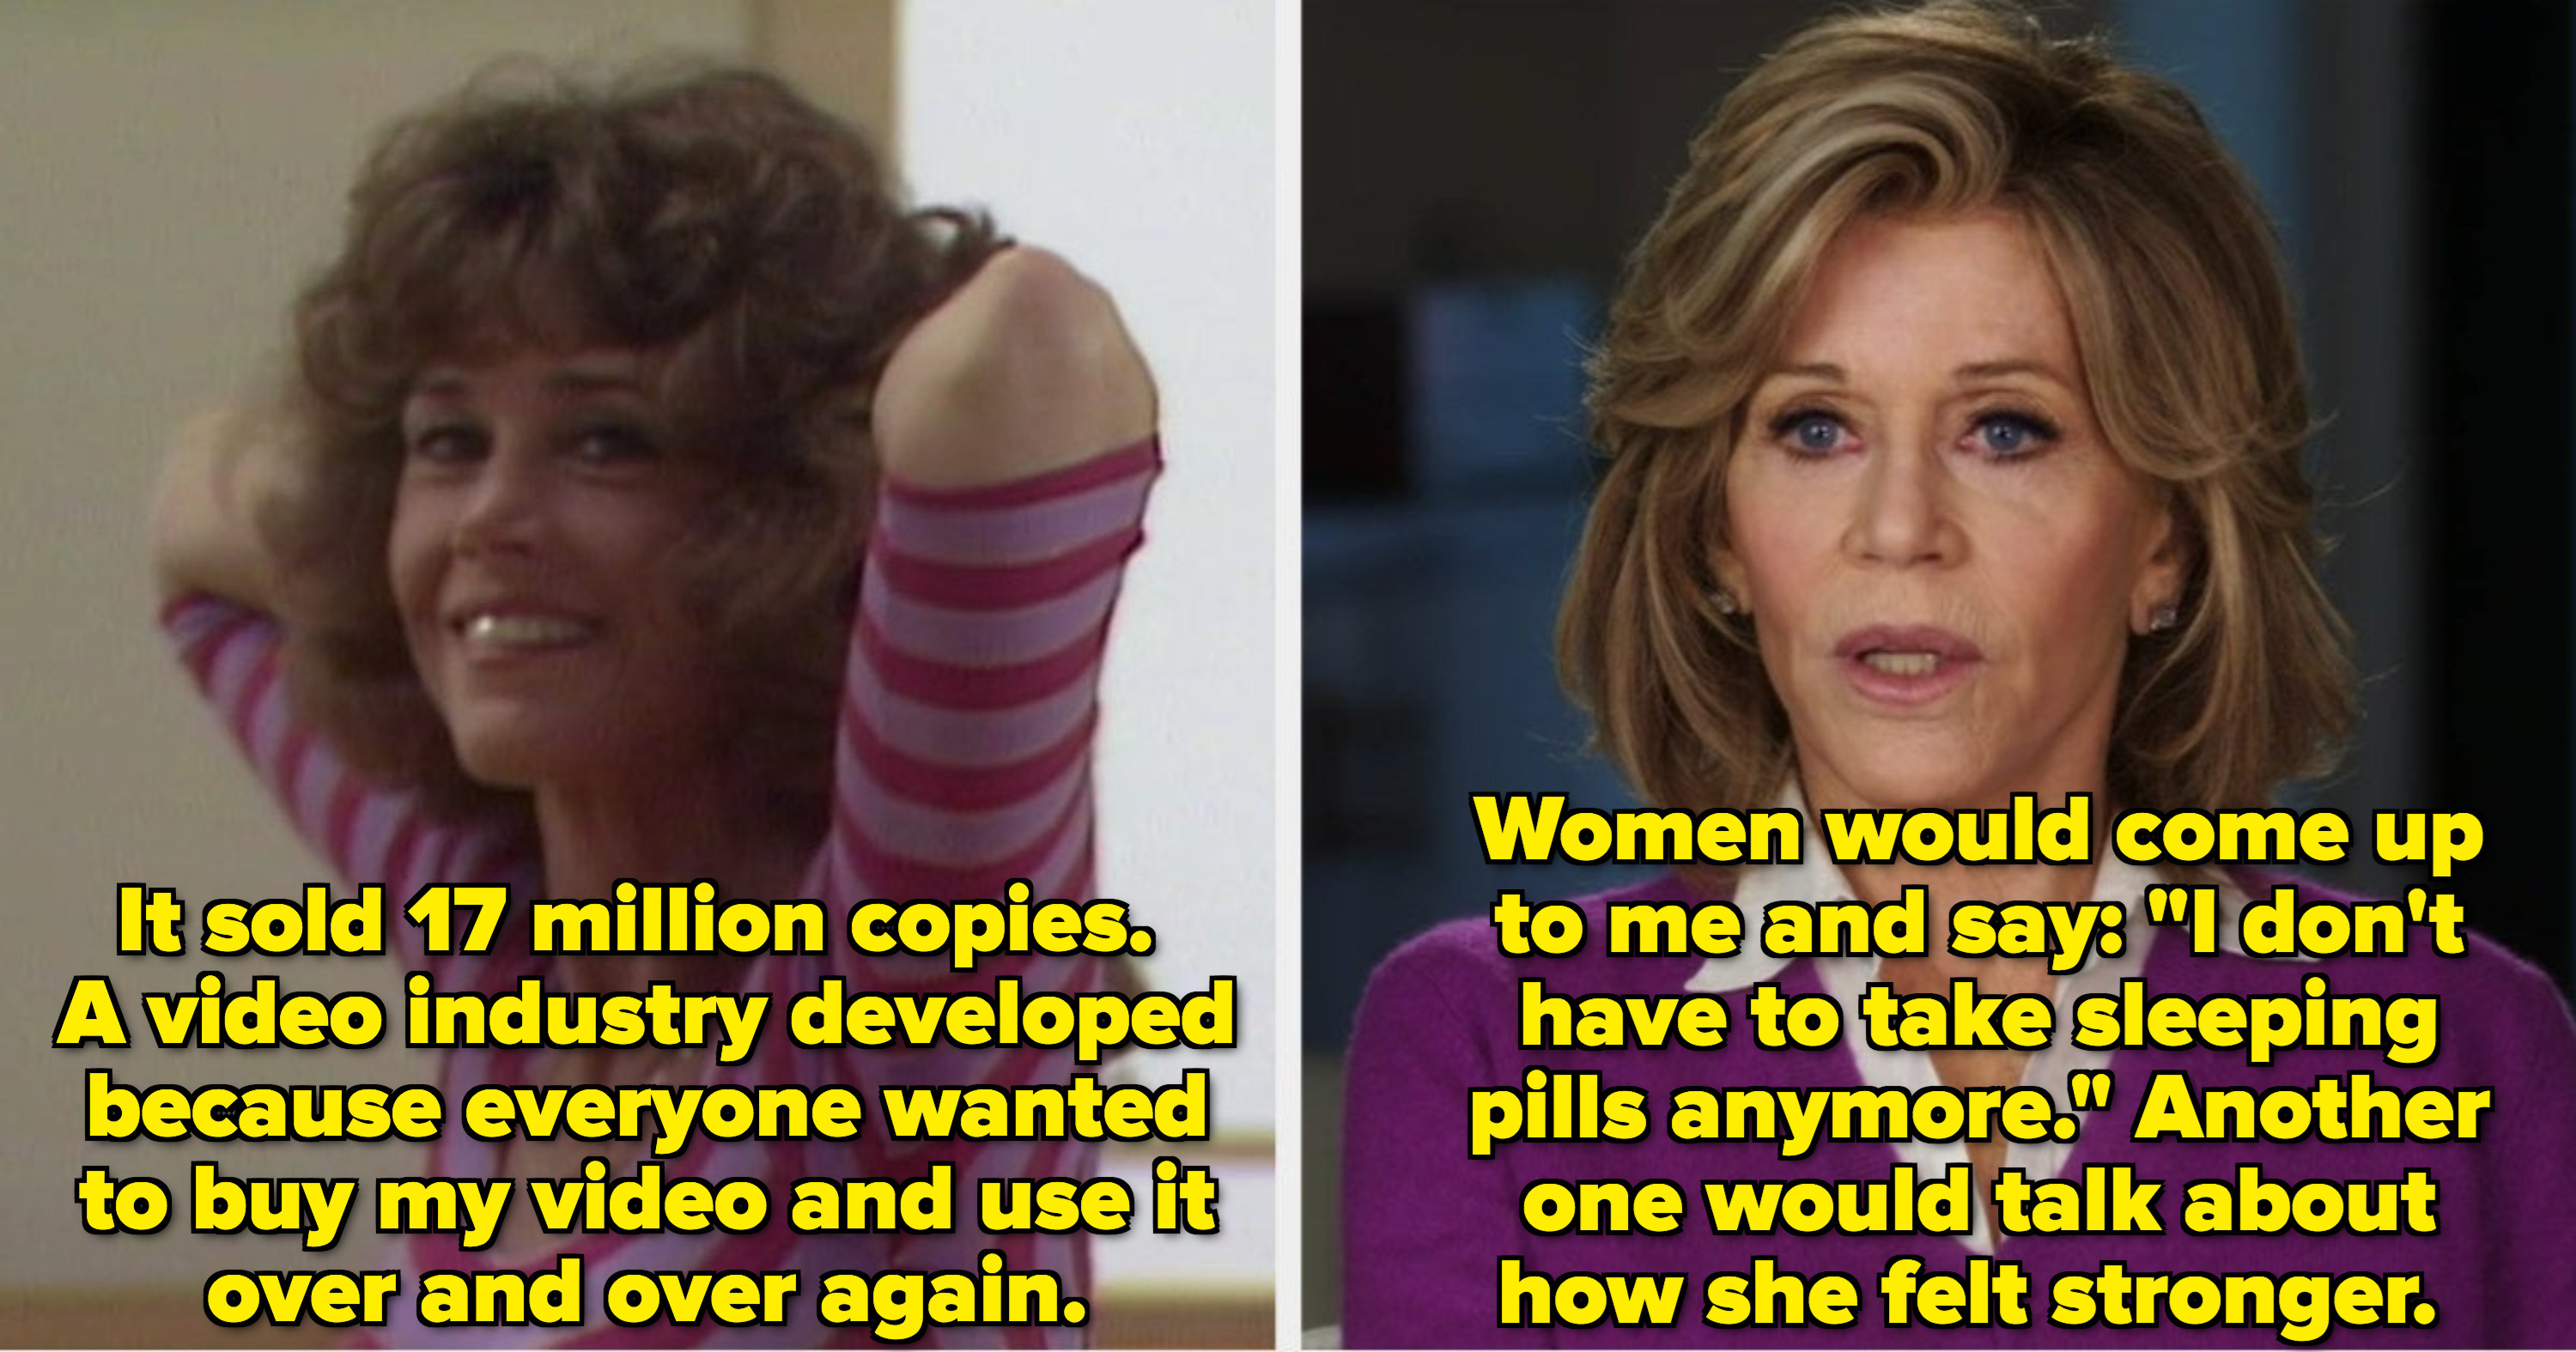 Jane Fonda discussing the impact her video had on women and the video industry; women would come up to her and tell her how they felt stronger because of the video tapes